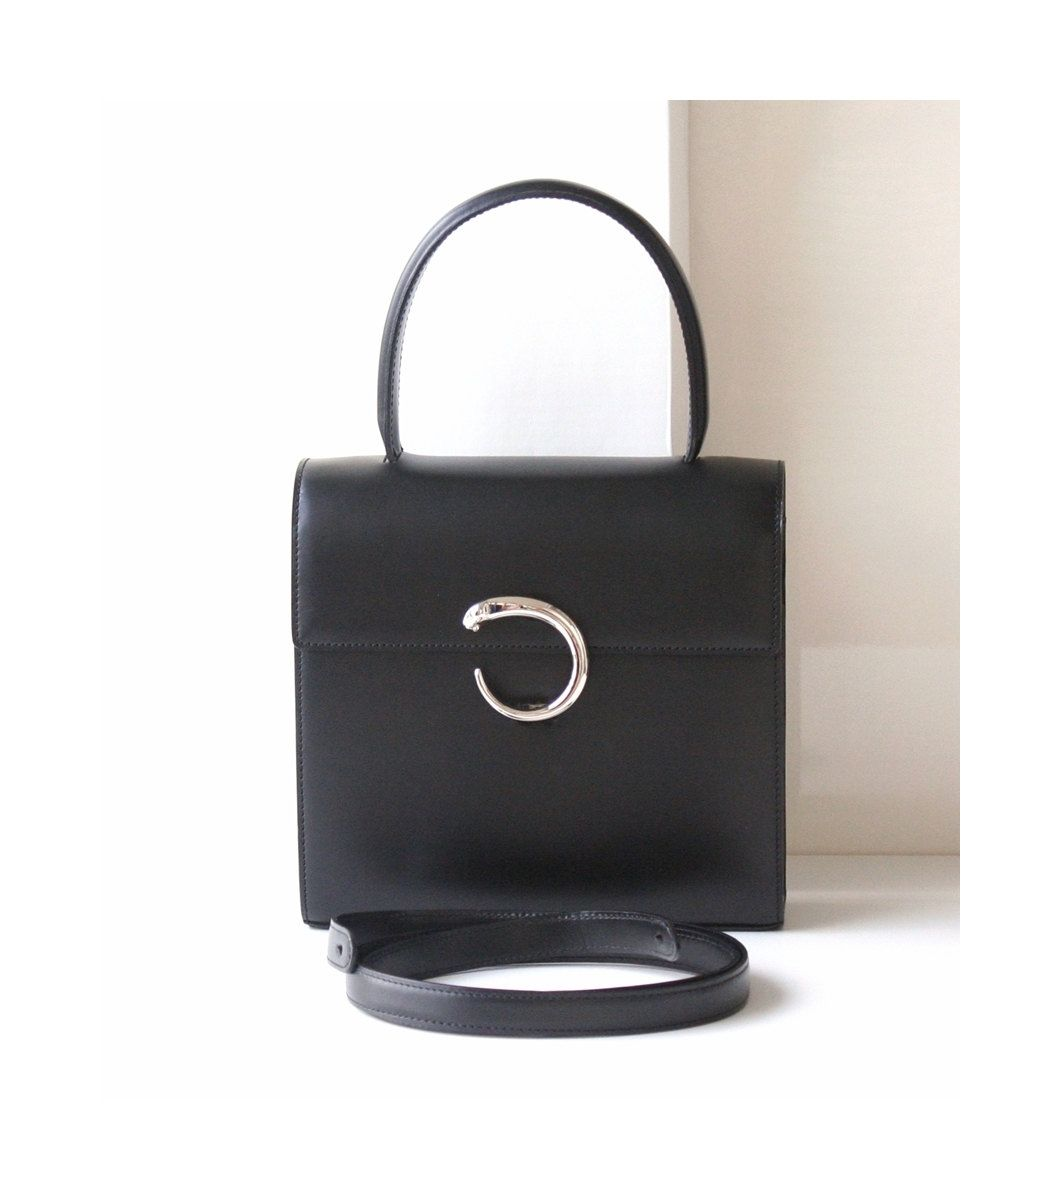 Cartier bag, Cartier panther bag, black bag, Cartier handbags  #Cartier #bag #panther #black #handbags #tote #satchel #hfvin